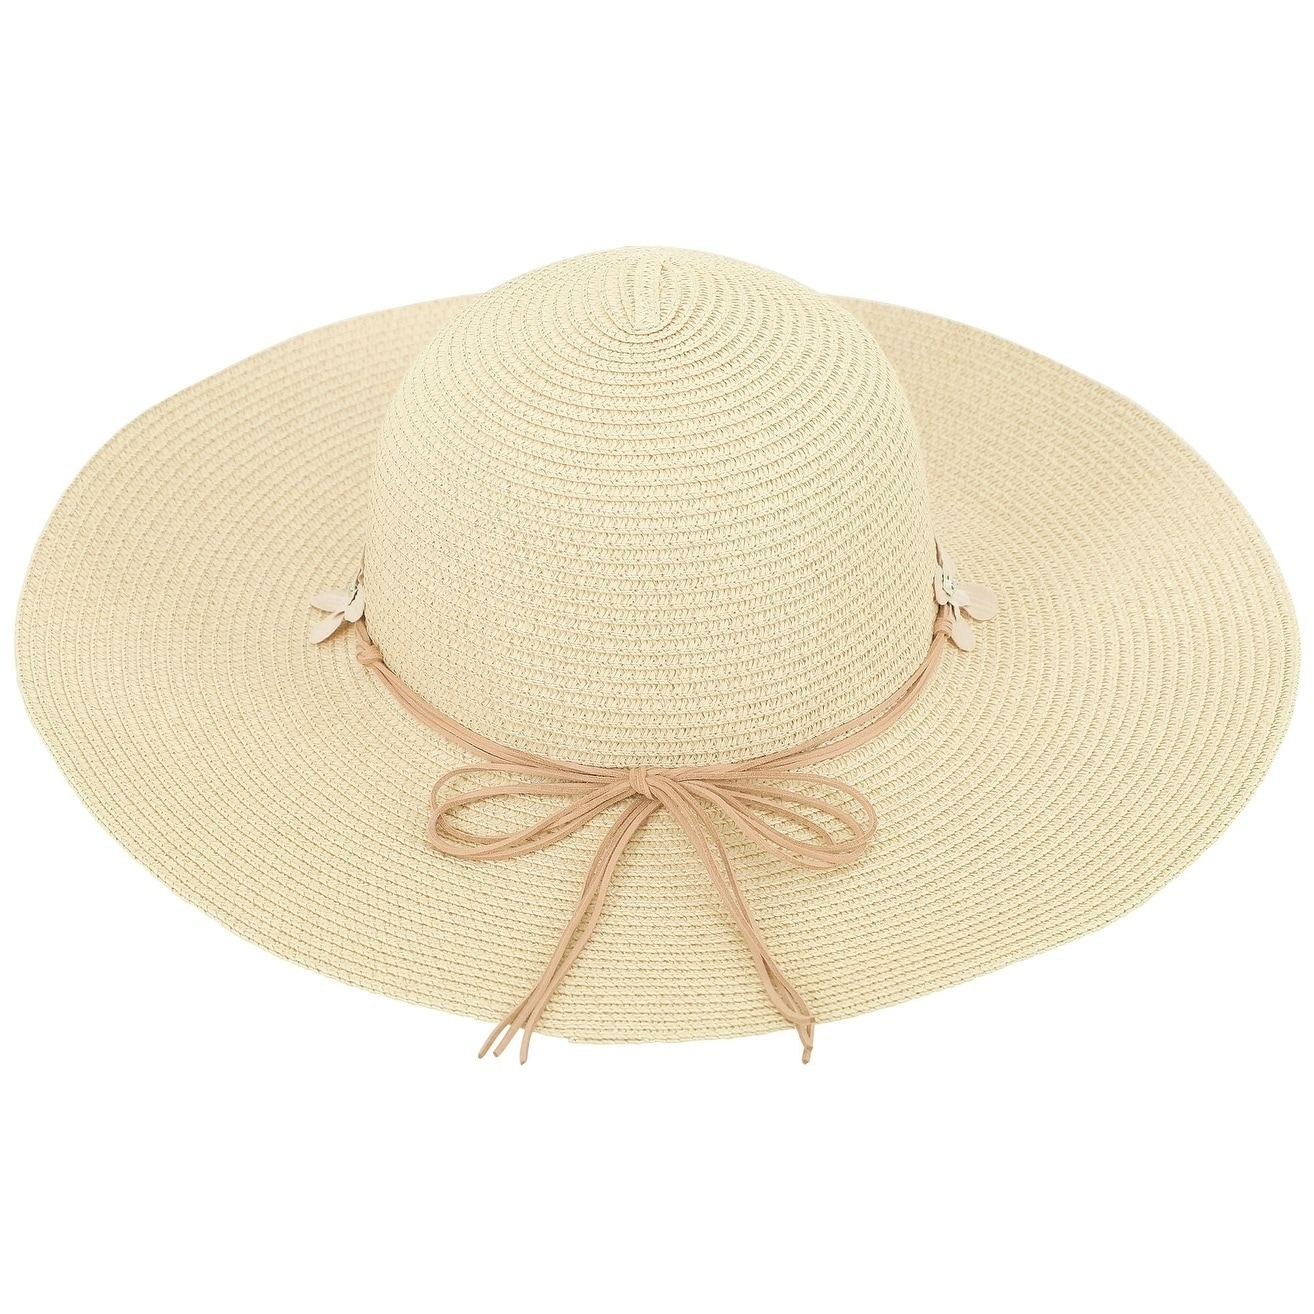 Shop Women s Summer Wide Brim Straw Sun Hat w  Chin Strap 9fc5ac545d6